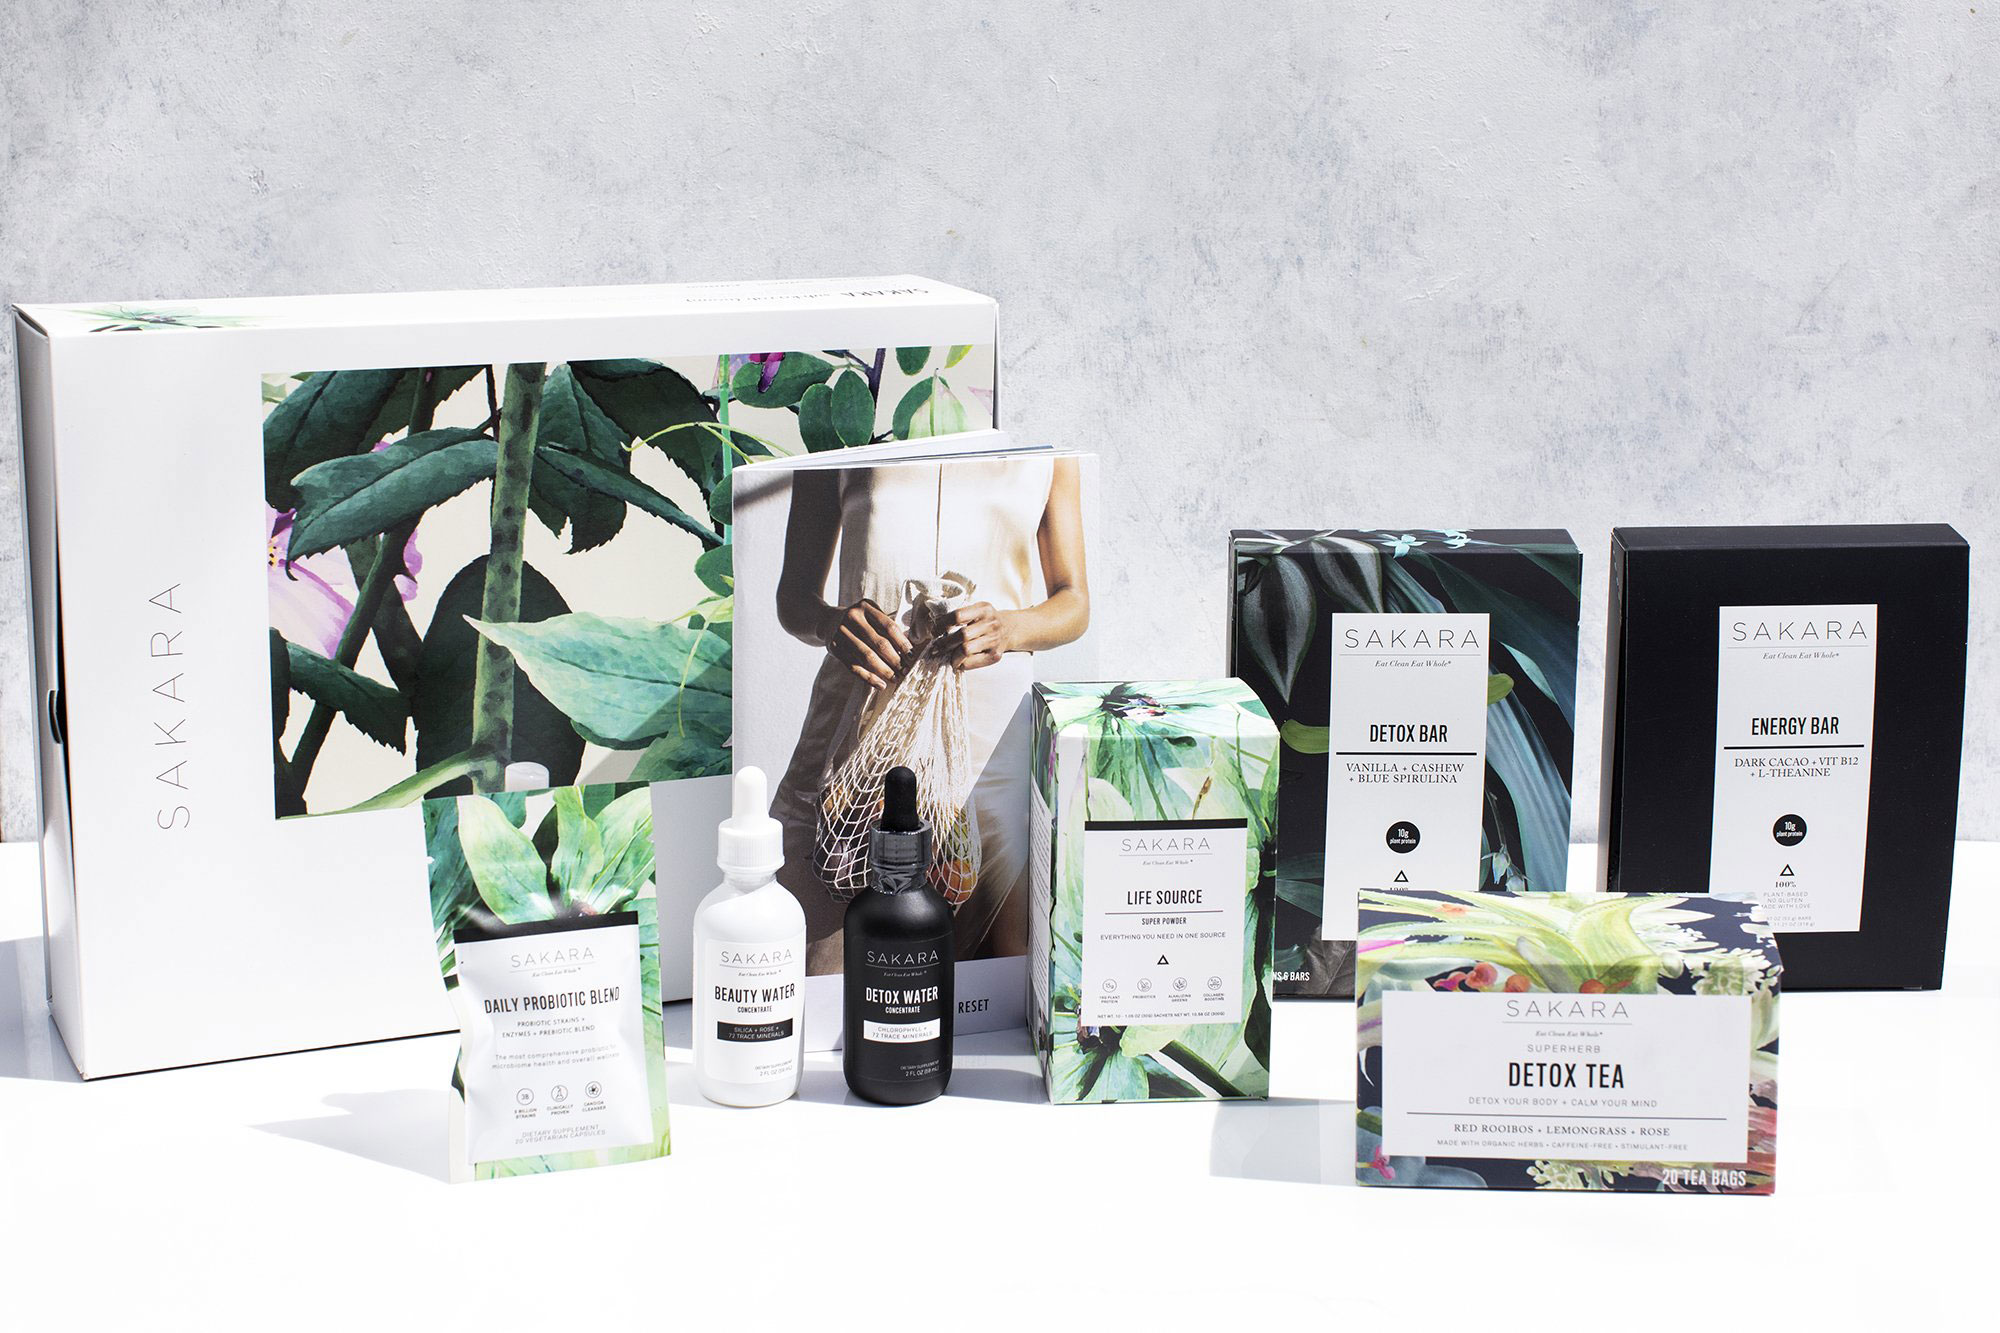 Sakara Life 10-Day Reset Kit